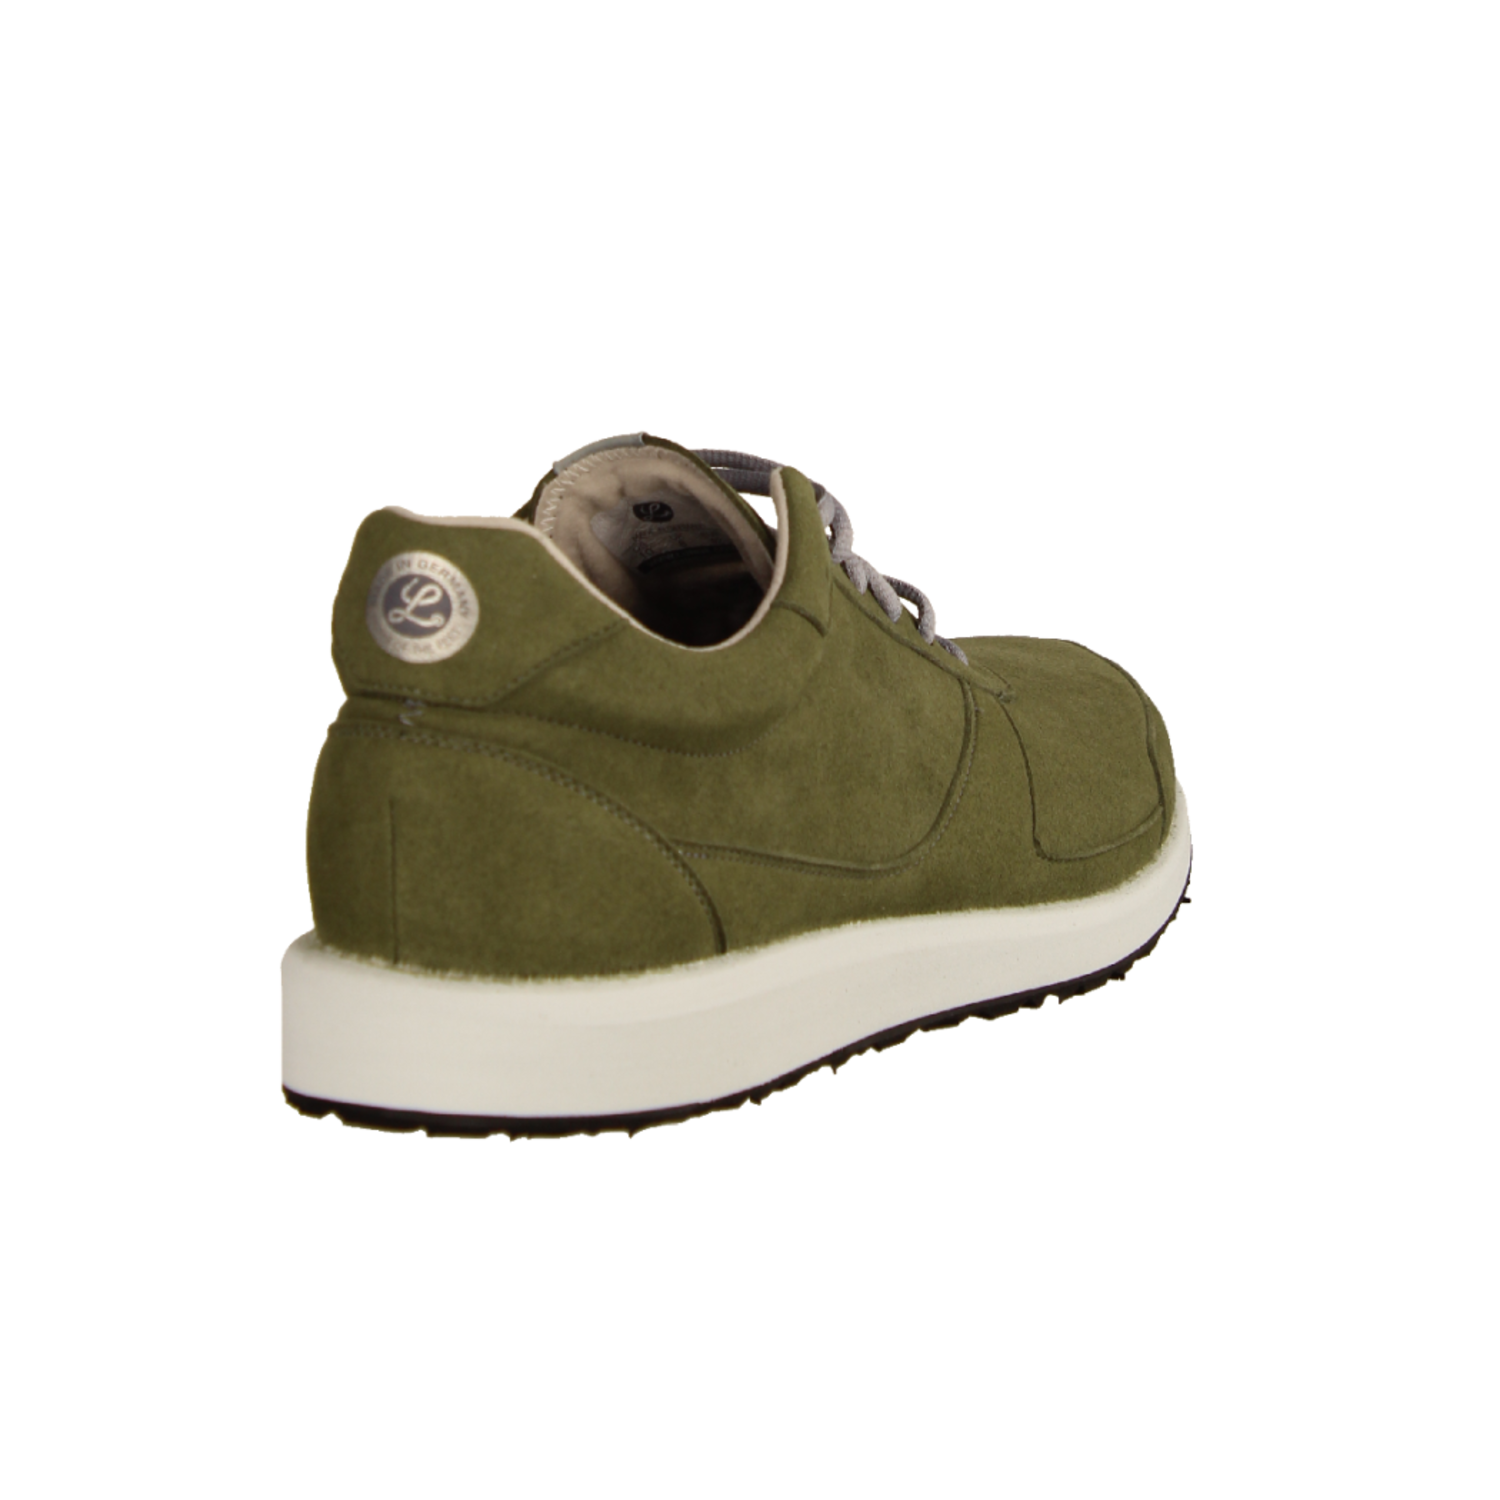 Integer Walk Cushion Olive/Green/Grey (grün) - Sneaker (grün)